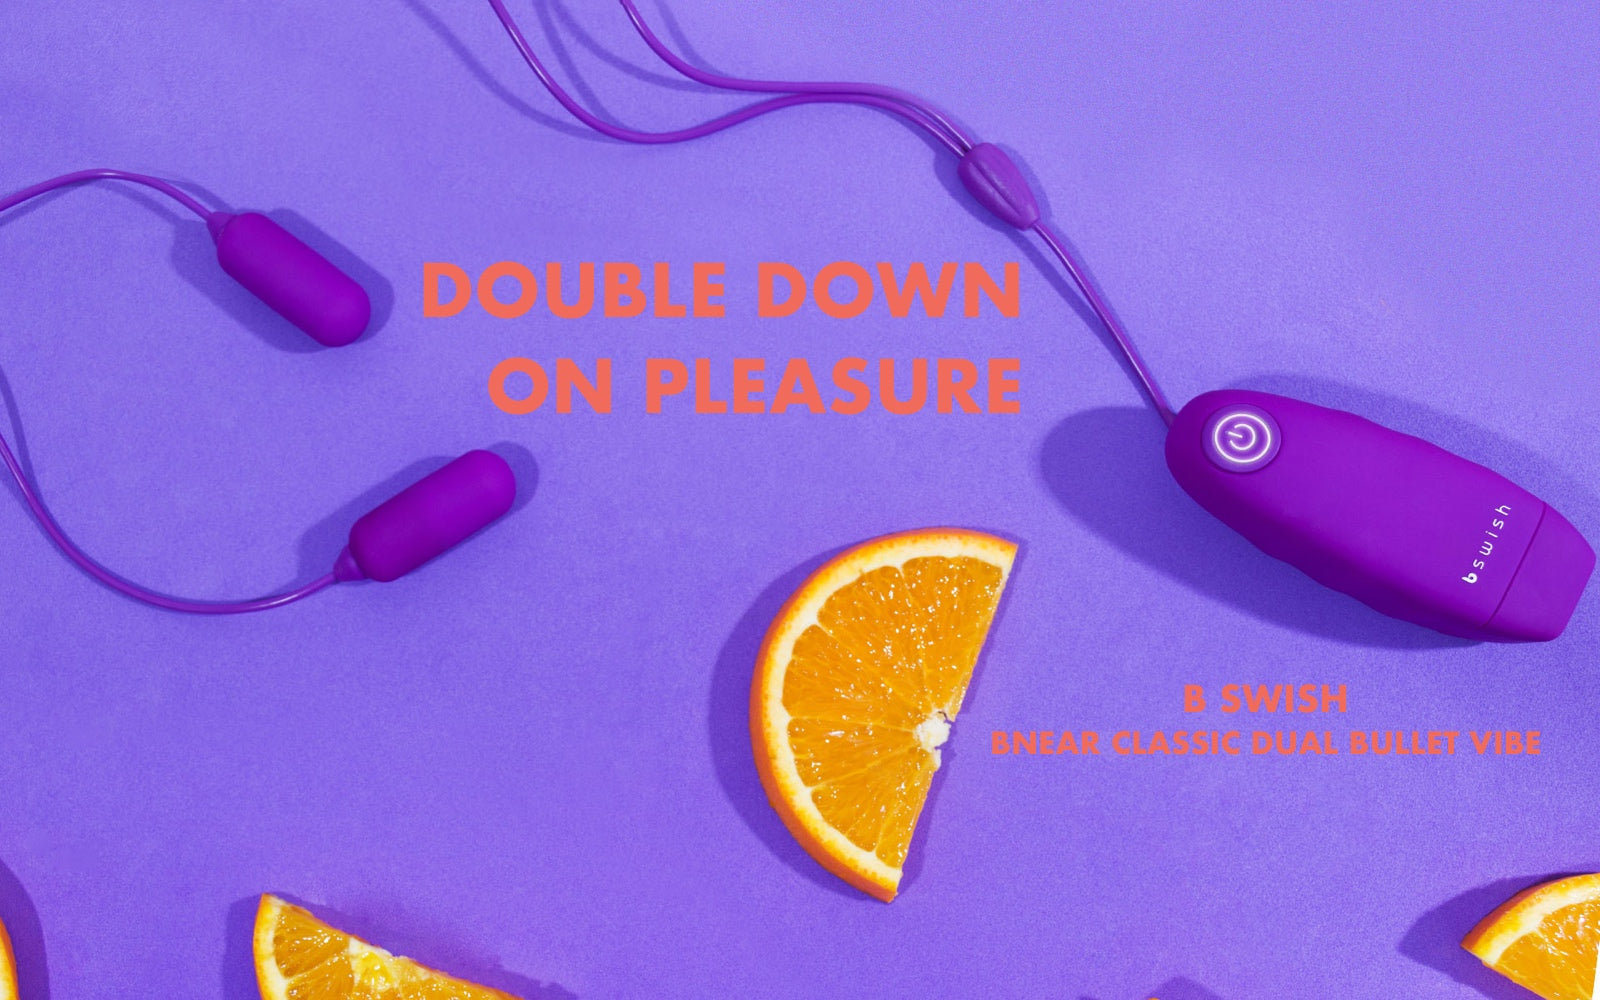 Double Down On Your Pleasure - B Swish BNear Classic Dual Bullet Vibe - Rolik®